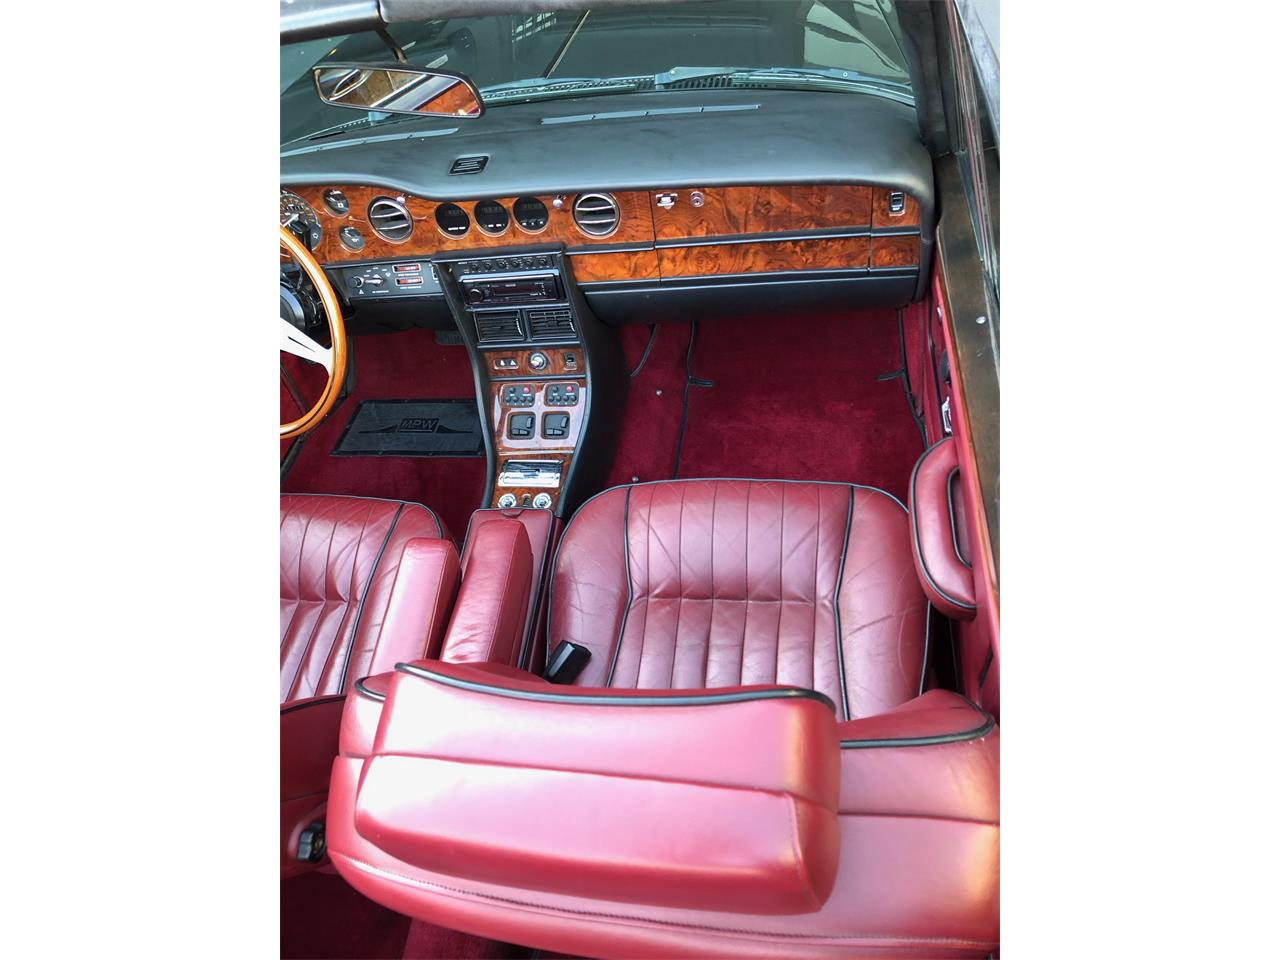 Large Picture of '87 Rolls-Royce Corniche II - $67,000.00 Offered by a Private Seller - PZCX